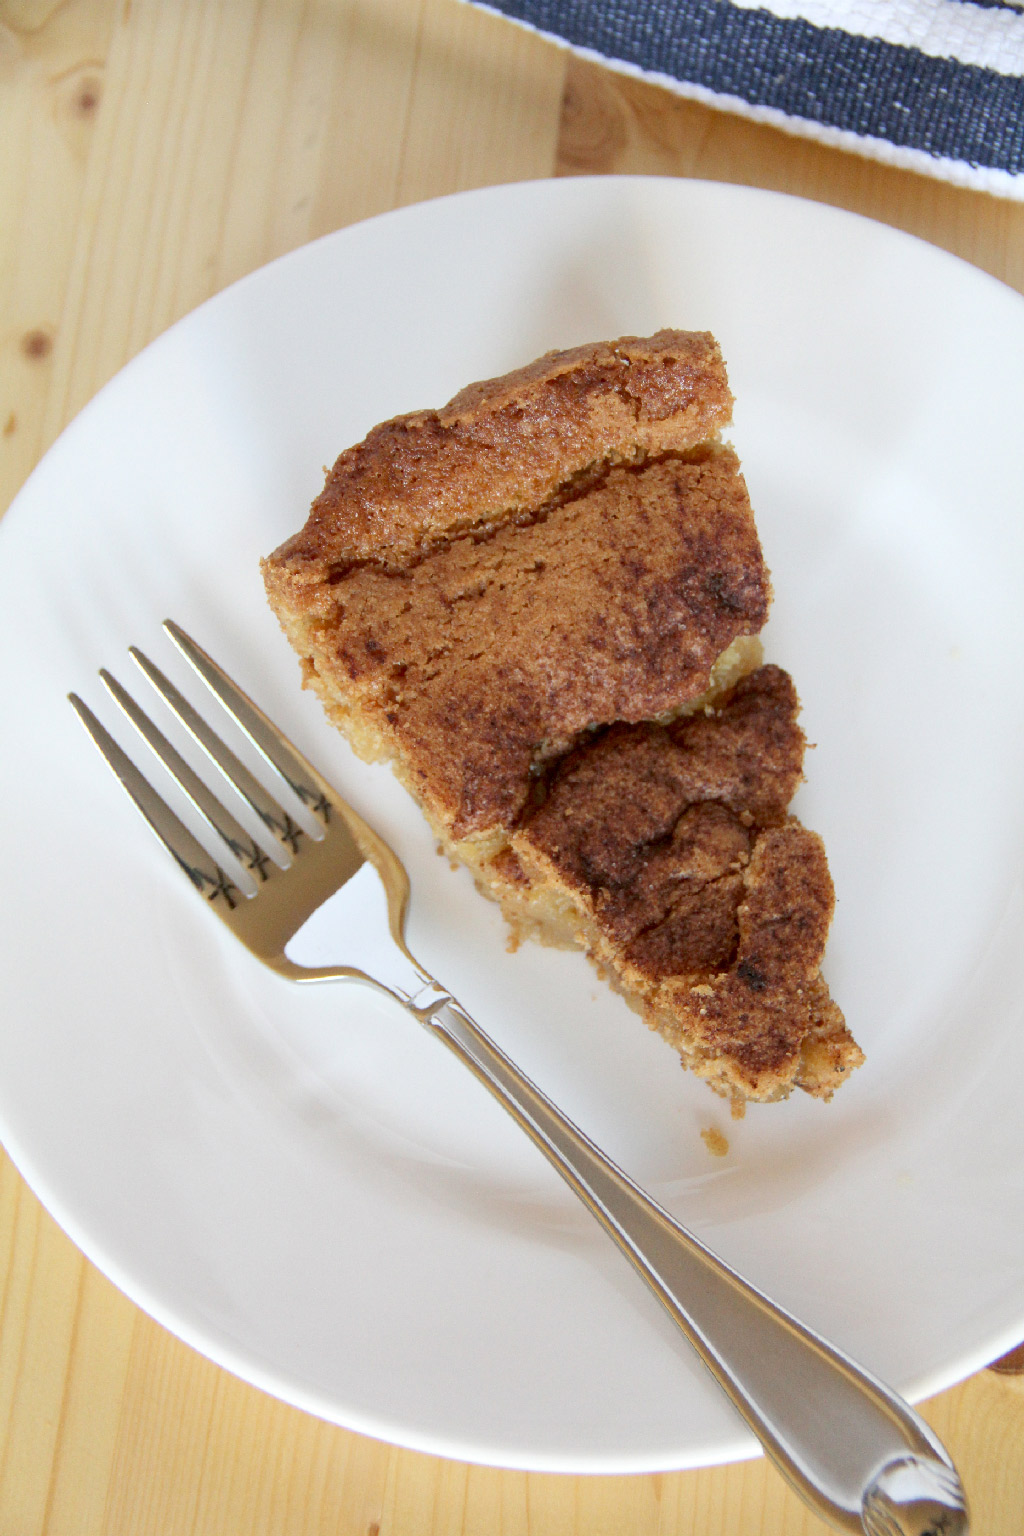 Snickerdoodle Cookie Pie in a skillet—a warm, cinnamony snickerdoodle cookie baked in a skillet so it's chewy and soft.